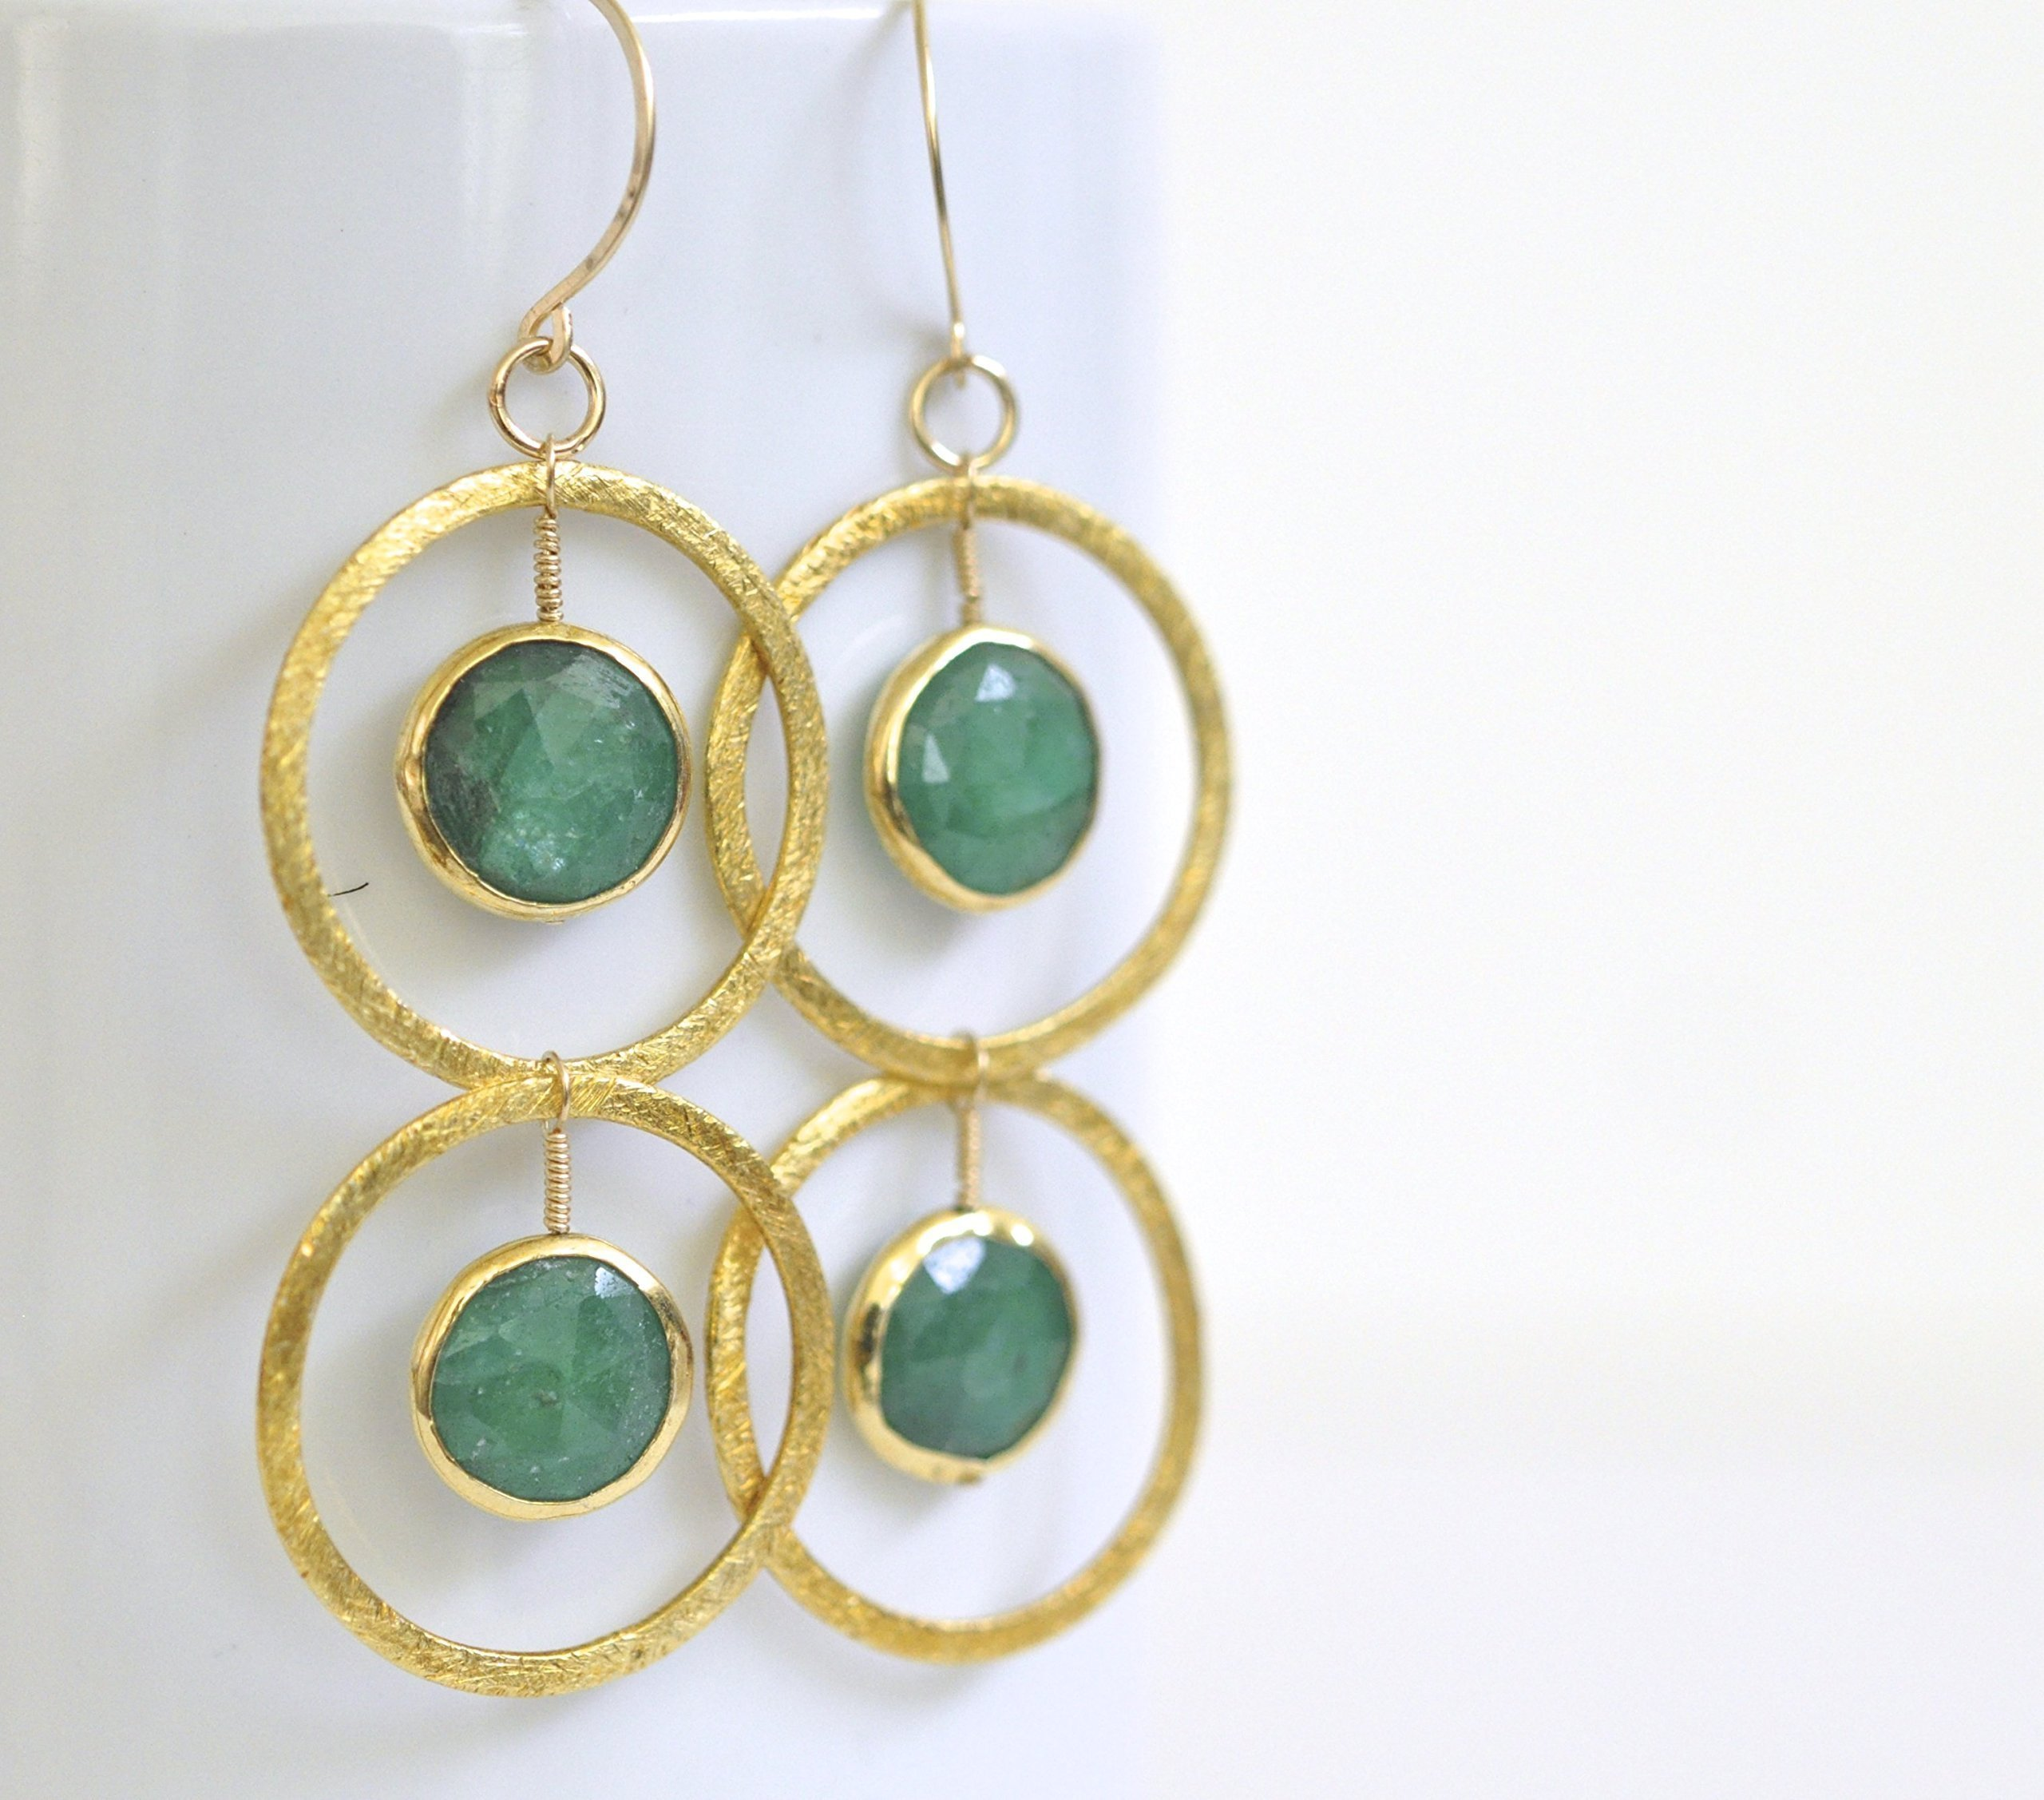 Genuine Emerald Earrings - Gold Vermeil Circle Earrings - 14k Gold Filled Earrings - May Birthstone